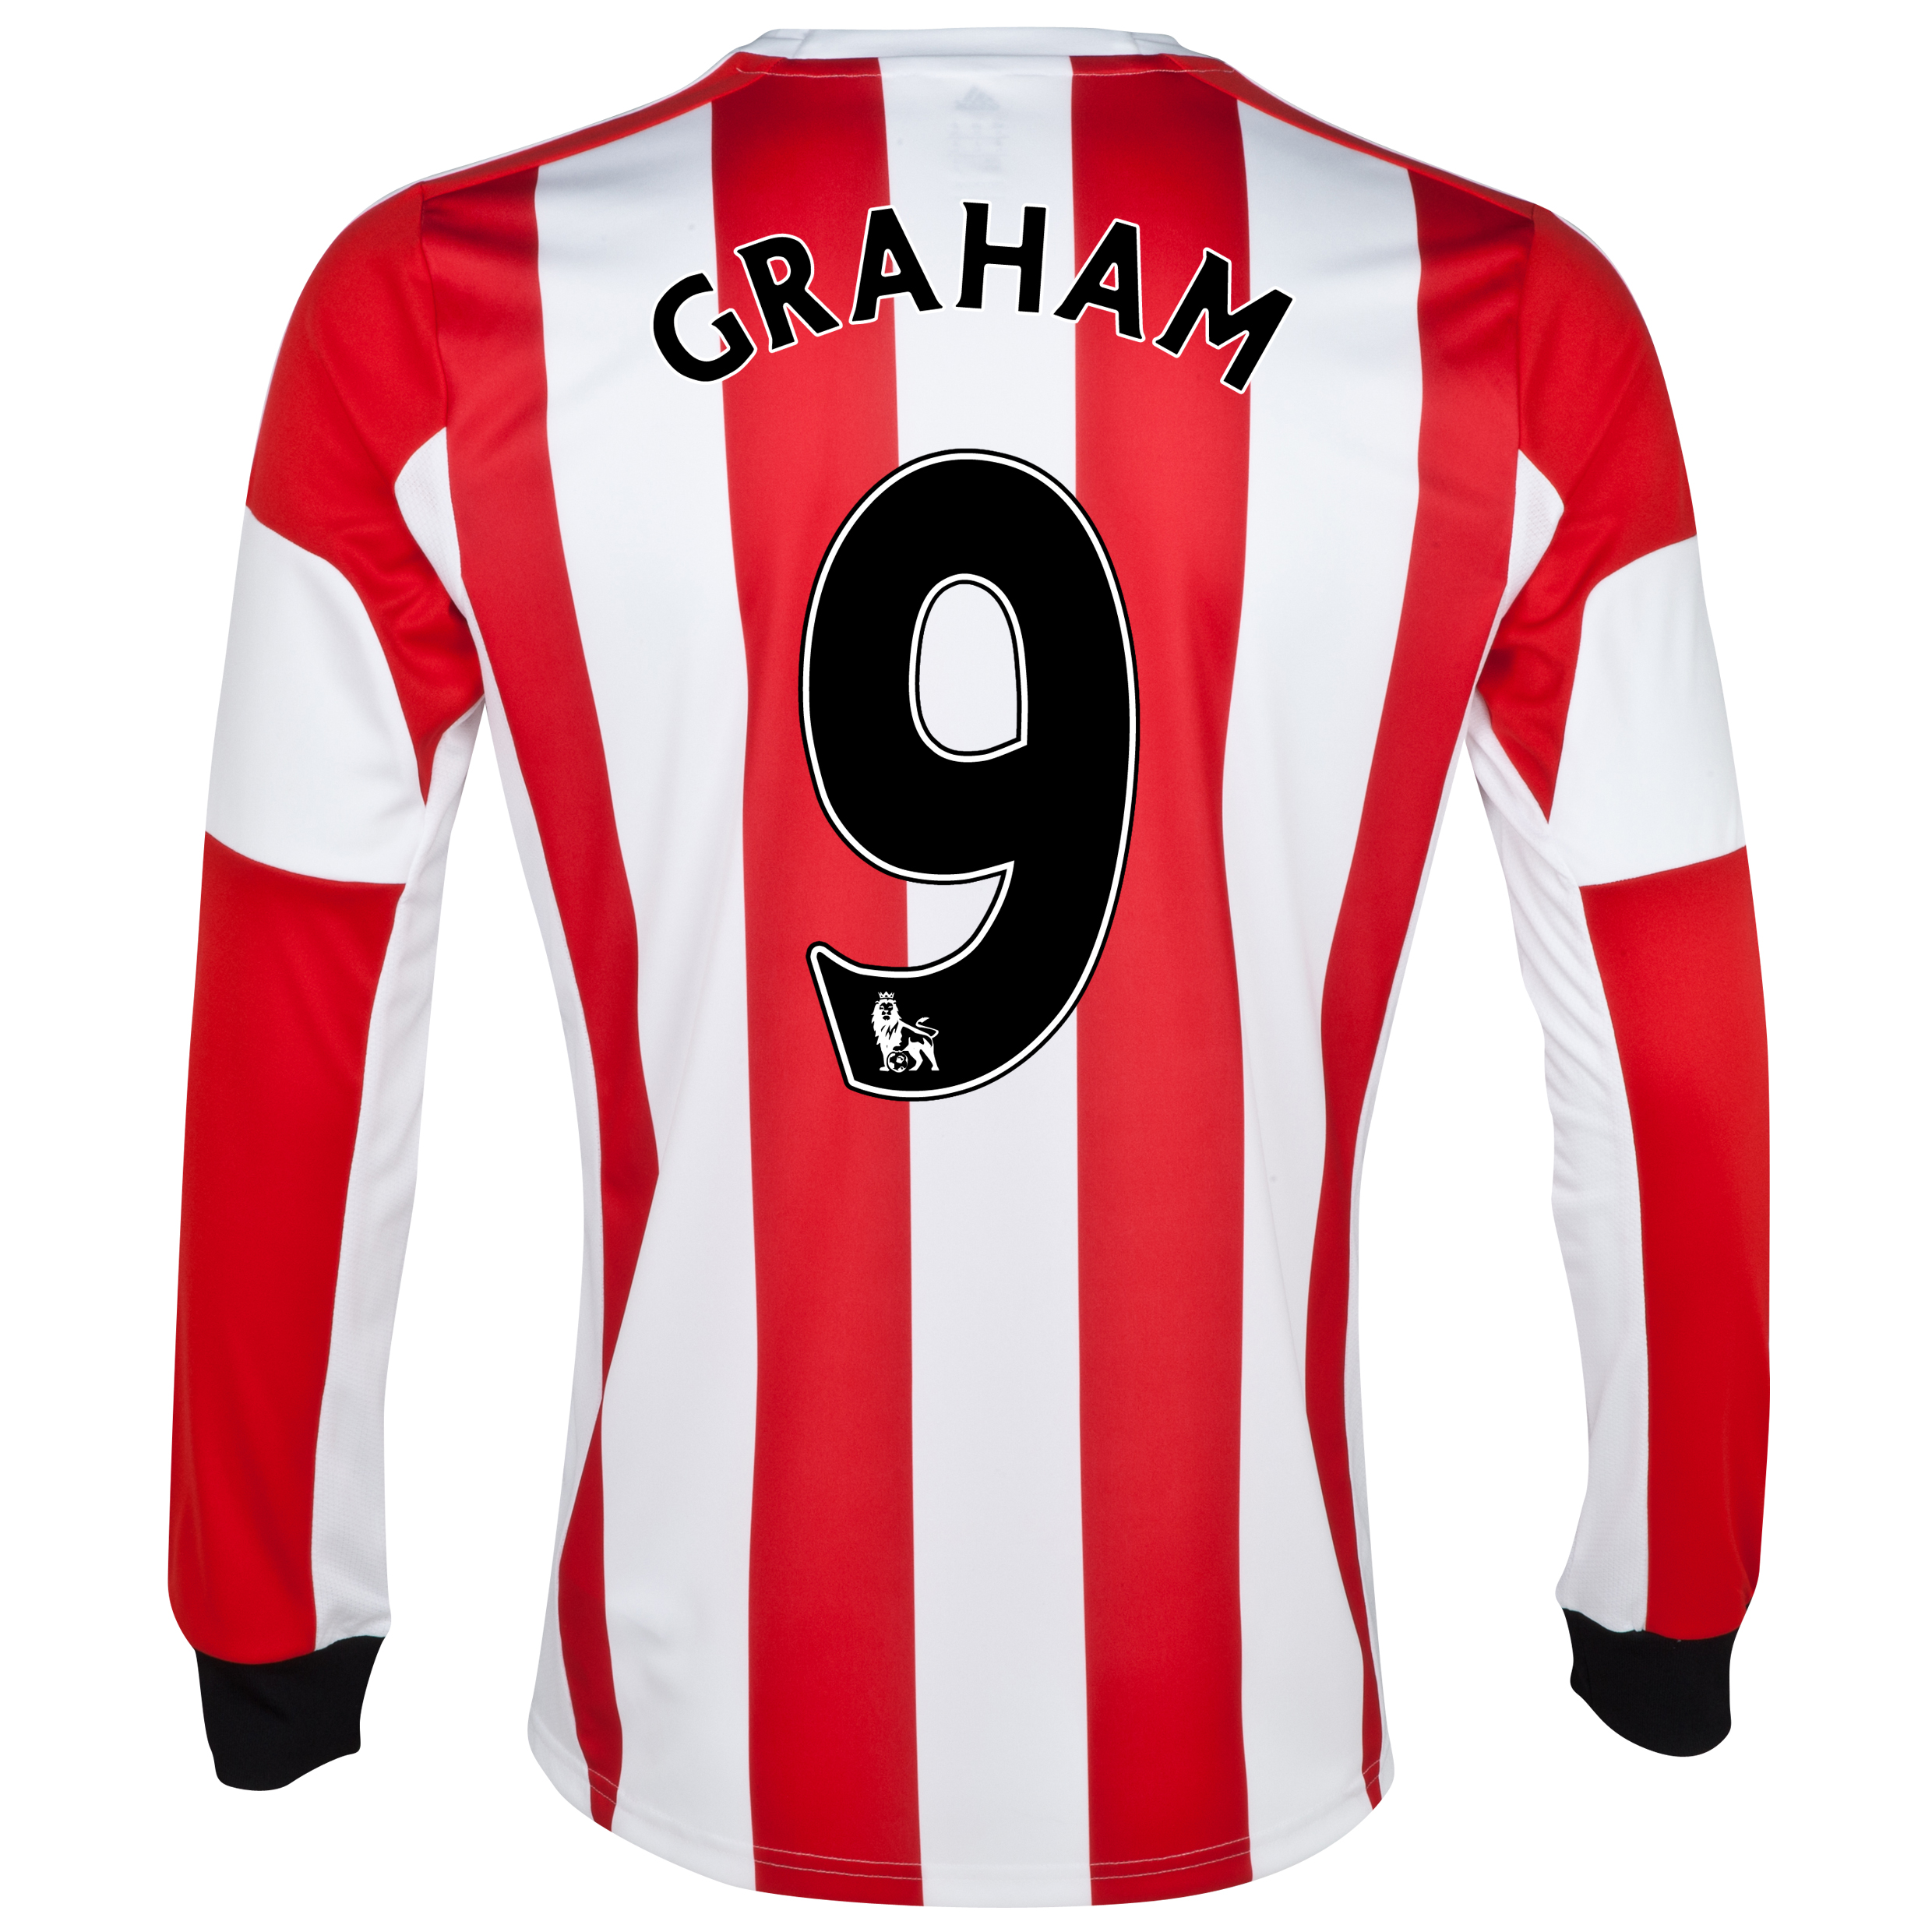 Sunderland Home Shirt 2013/14 - Long Sleeved  with Graham 9 printing